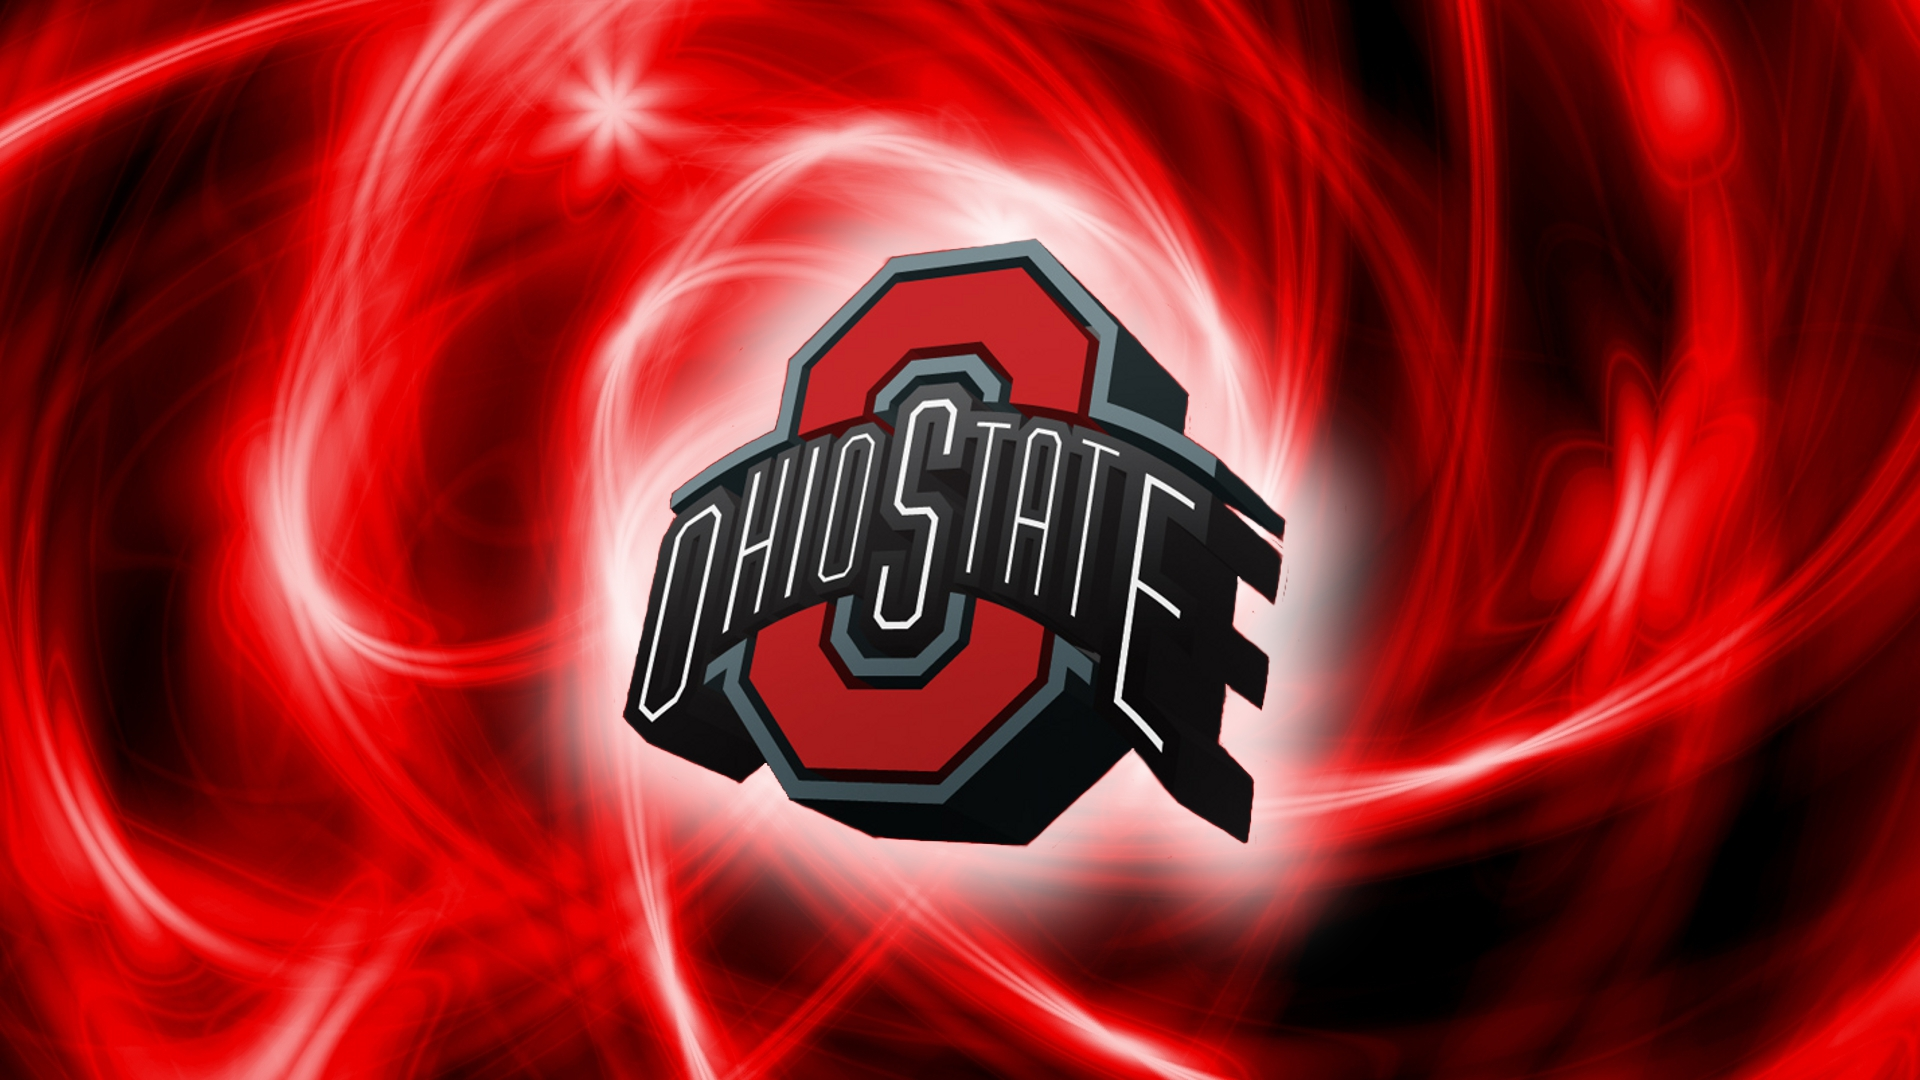 OSU Wallpaper 209   Ohio State Football Wallpaper 29088652 1920x1080